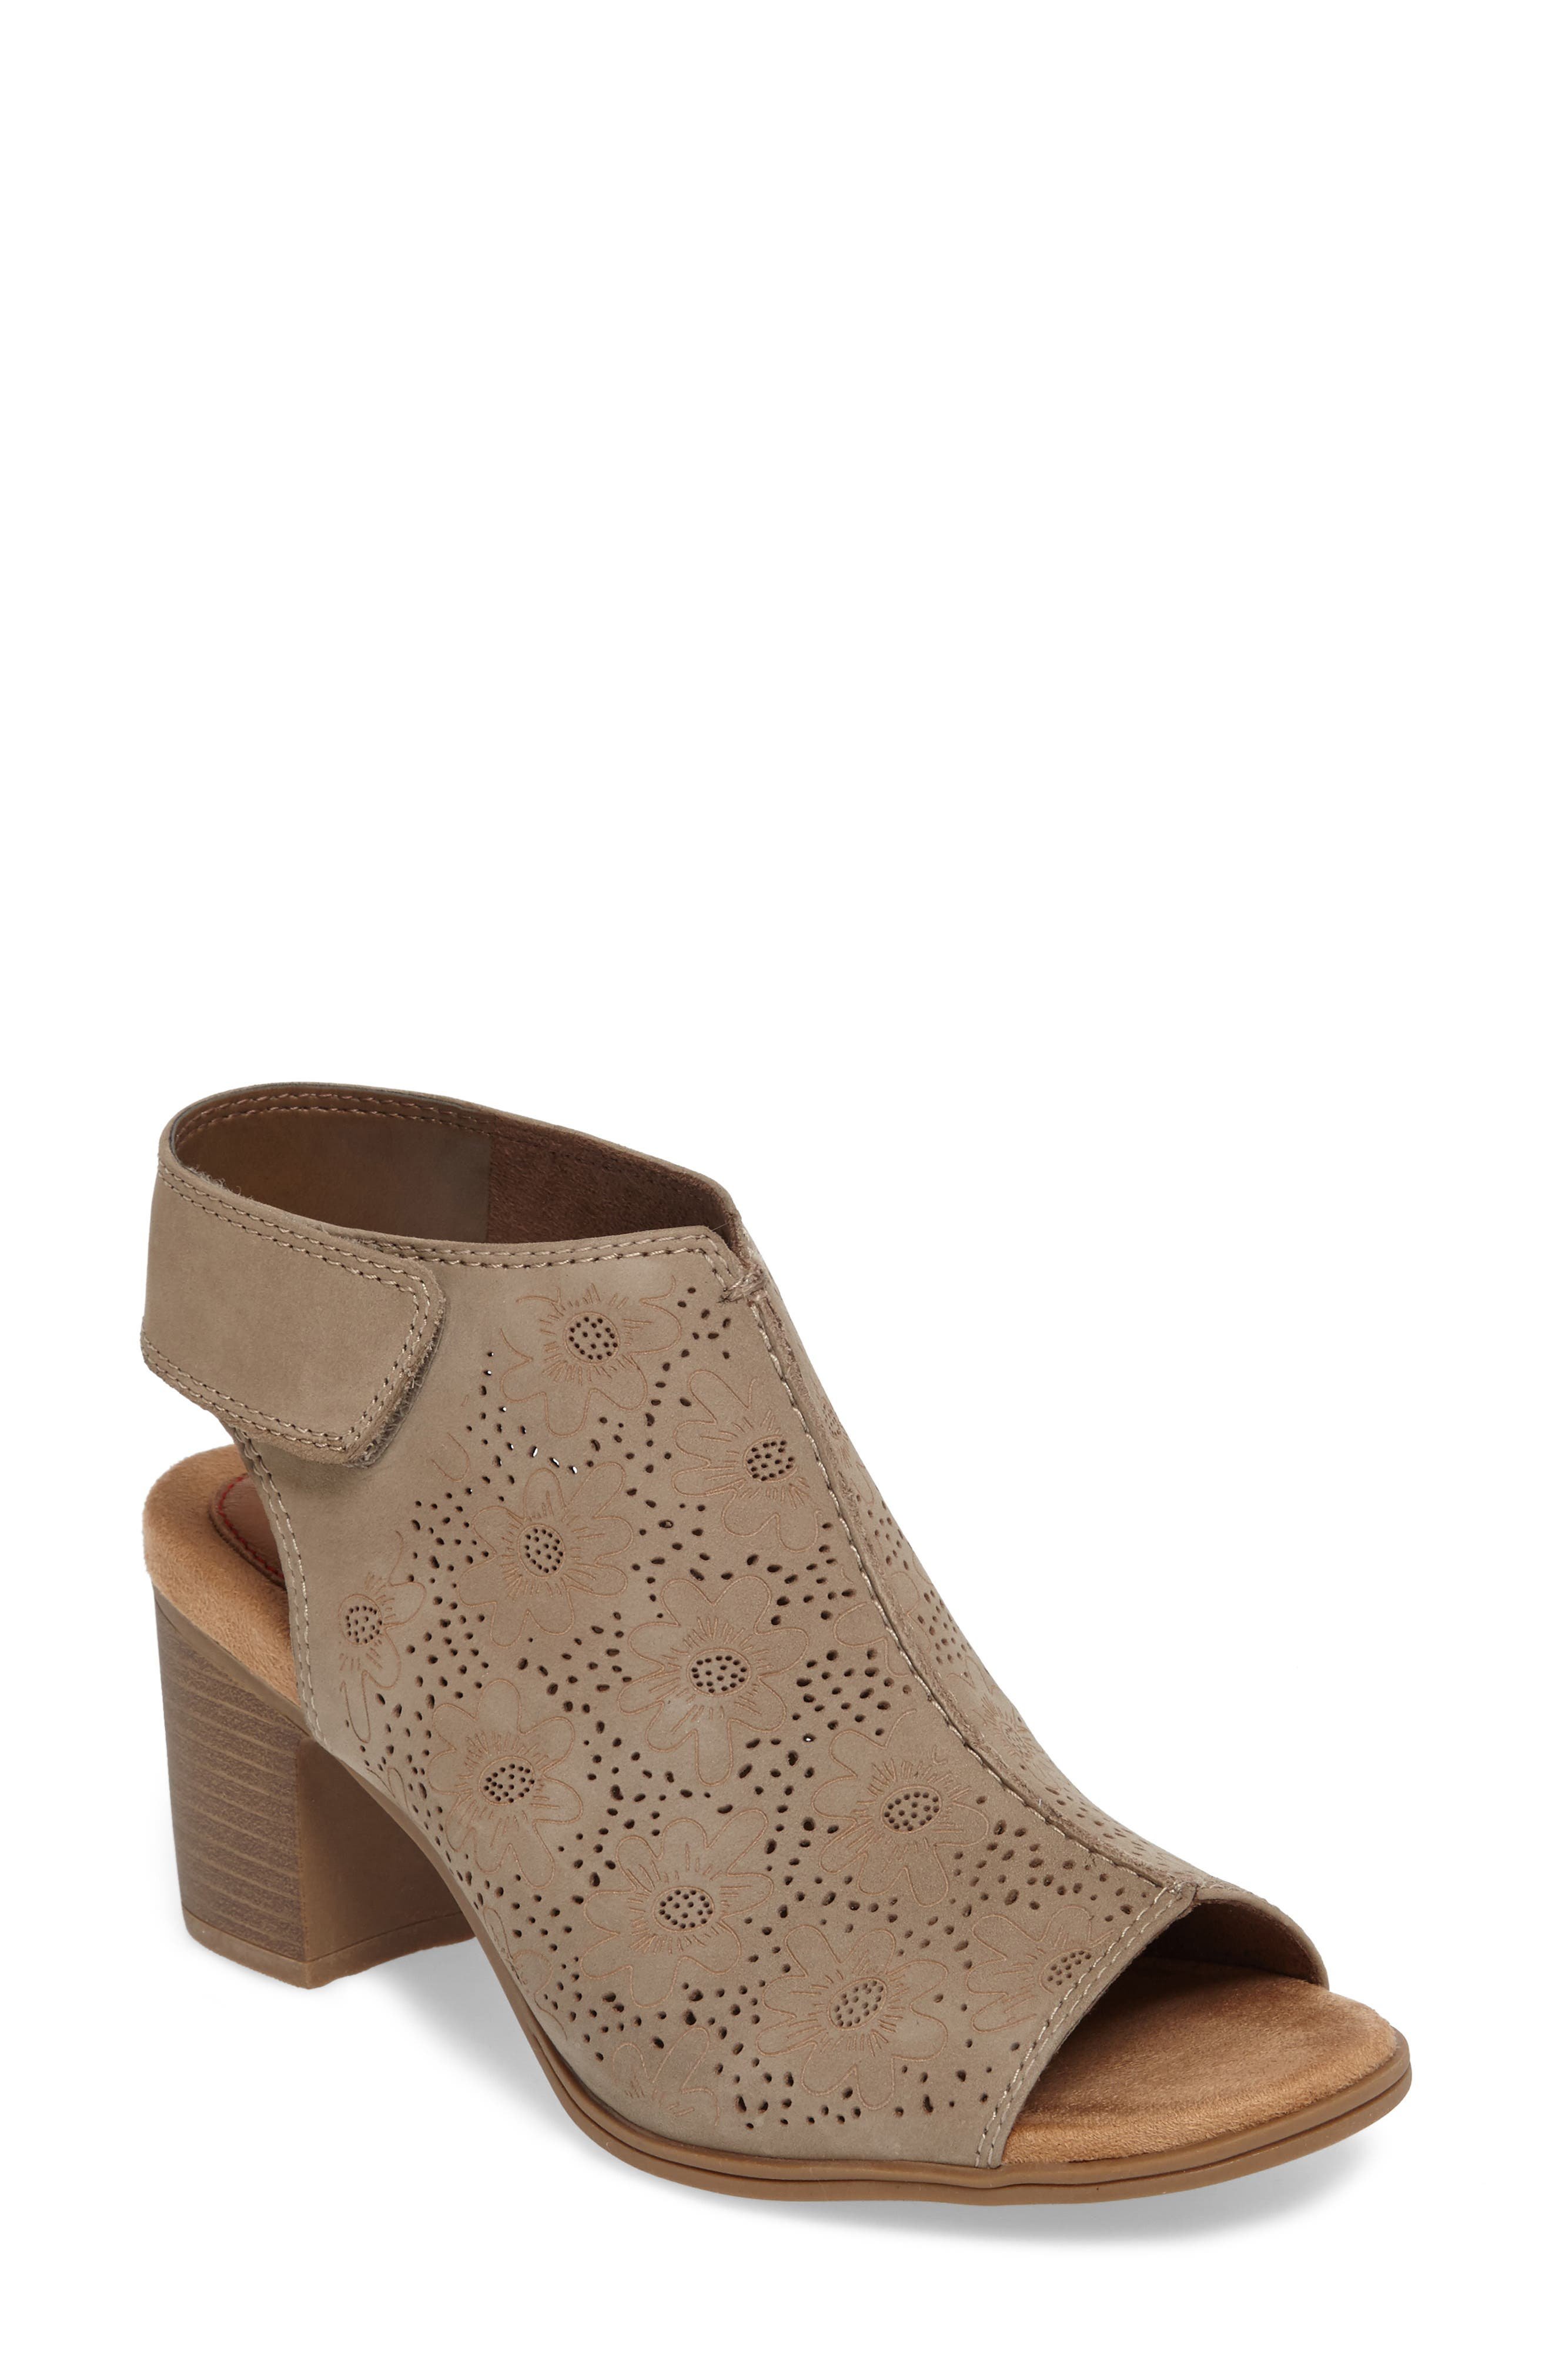 Rockport Cobb Hill Hattie Perforated Slingback Sandal (Women)